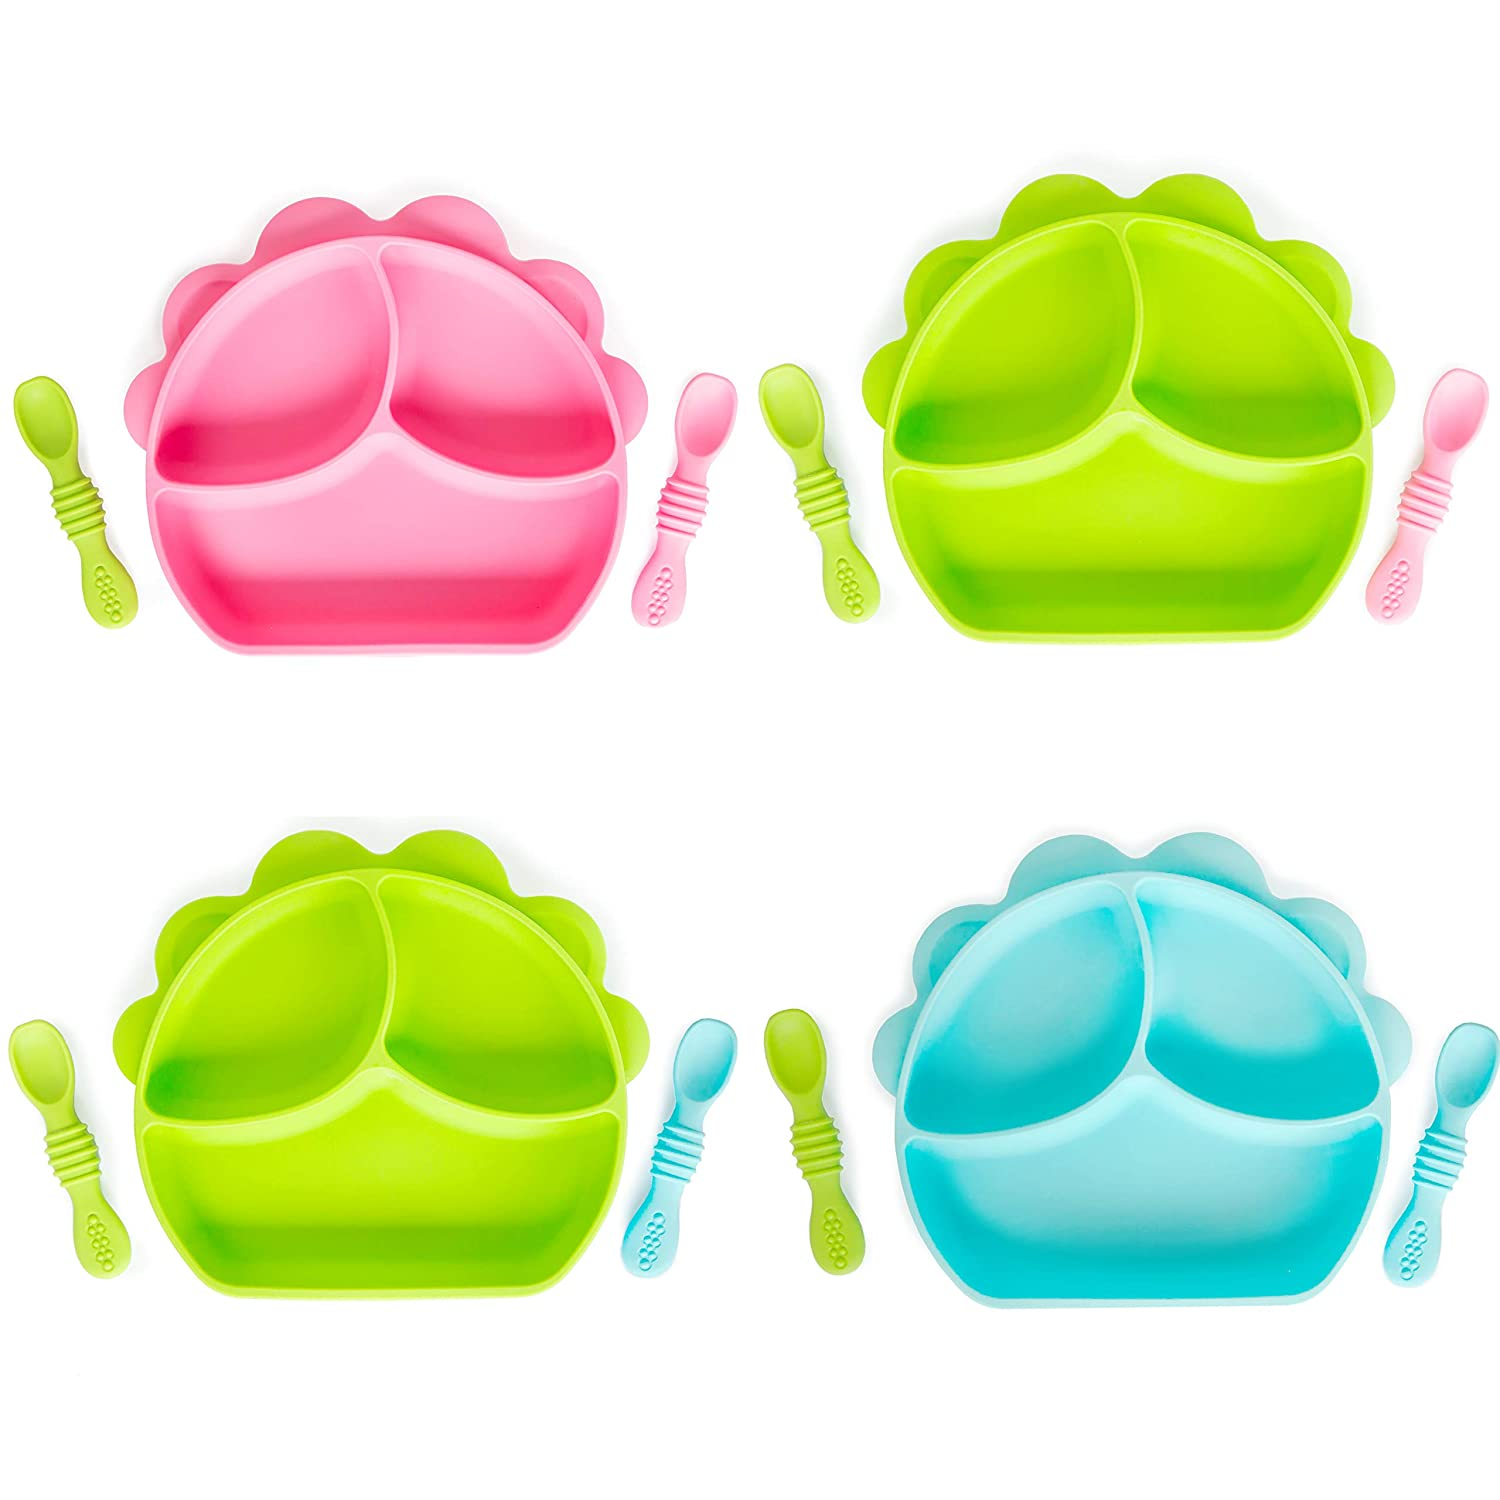 Cuddle Affects Silicone Baby Plate with 2 Soft Self-Feeding Spoons for Babies with Gum-Friendly Teethers - Waterproof Non-Slip Infant Newborn Toddler Utensil Set for Self-Training (Variety of Colors)